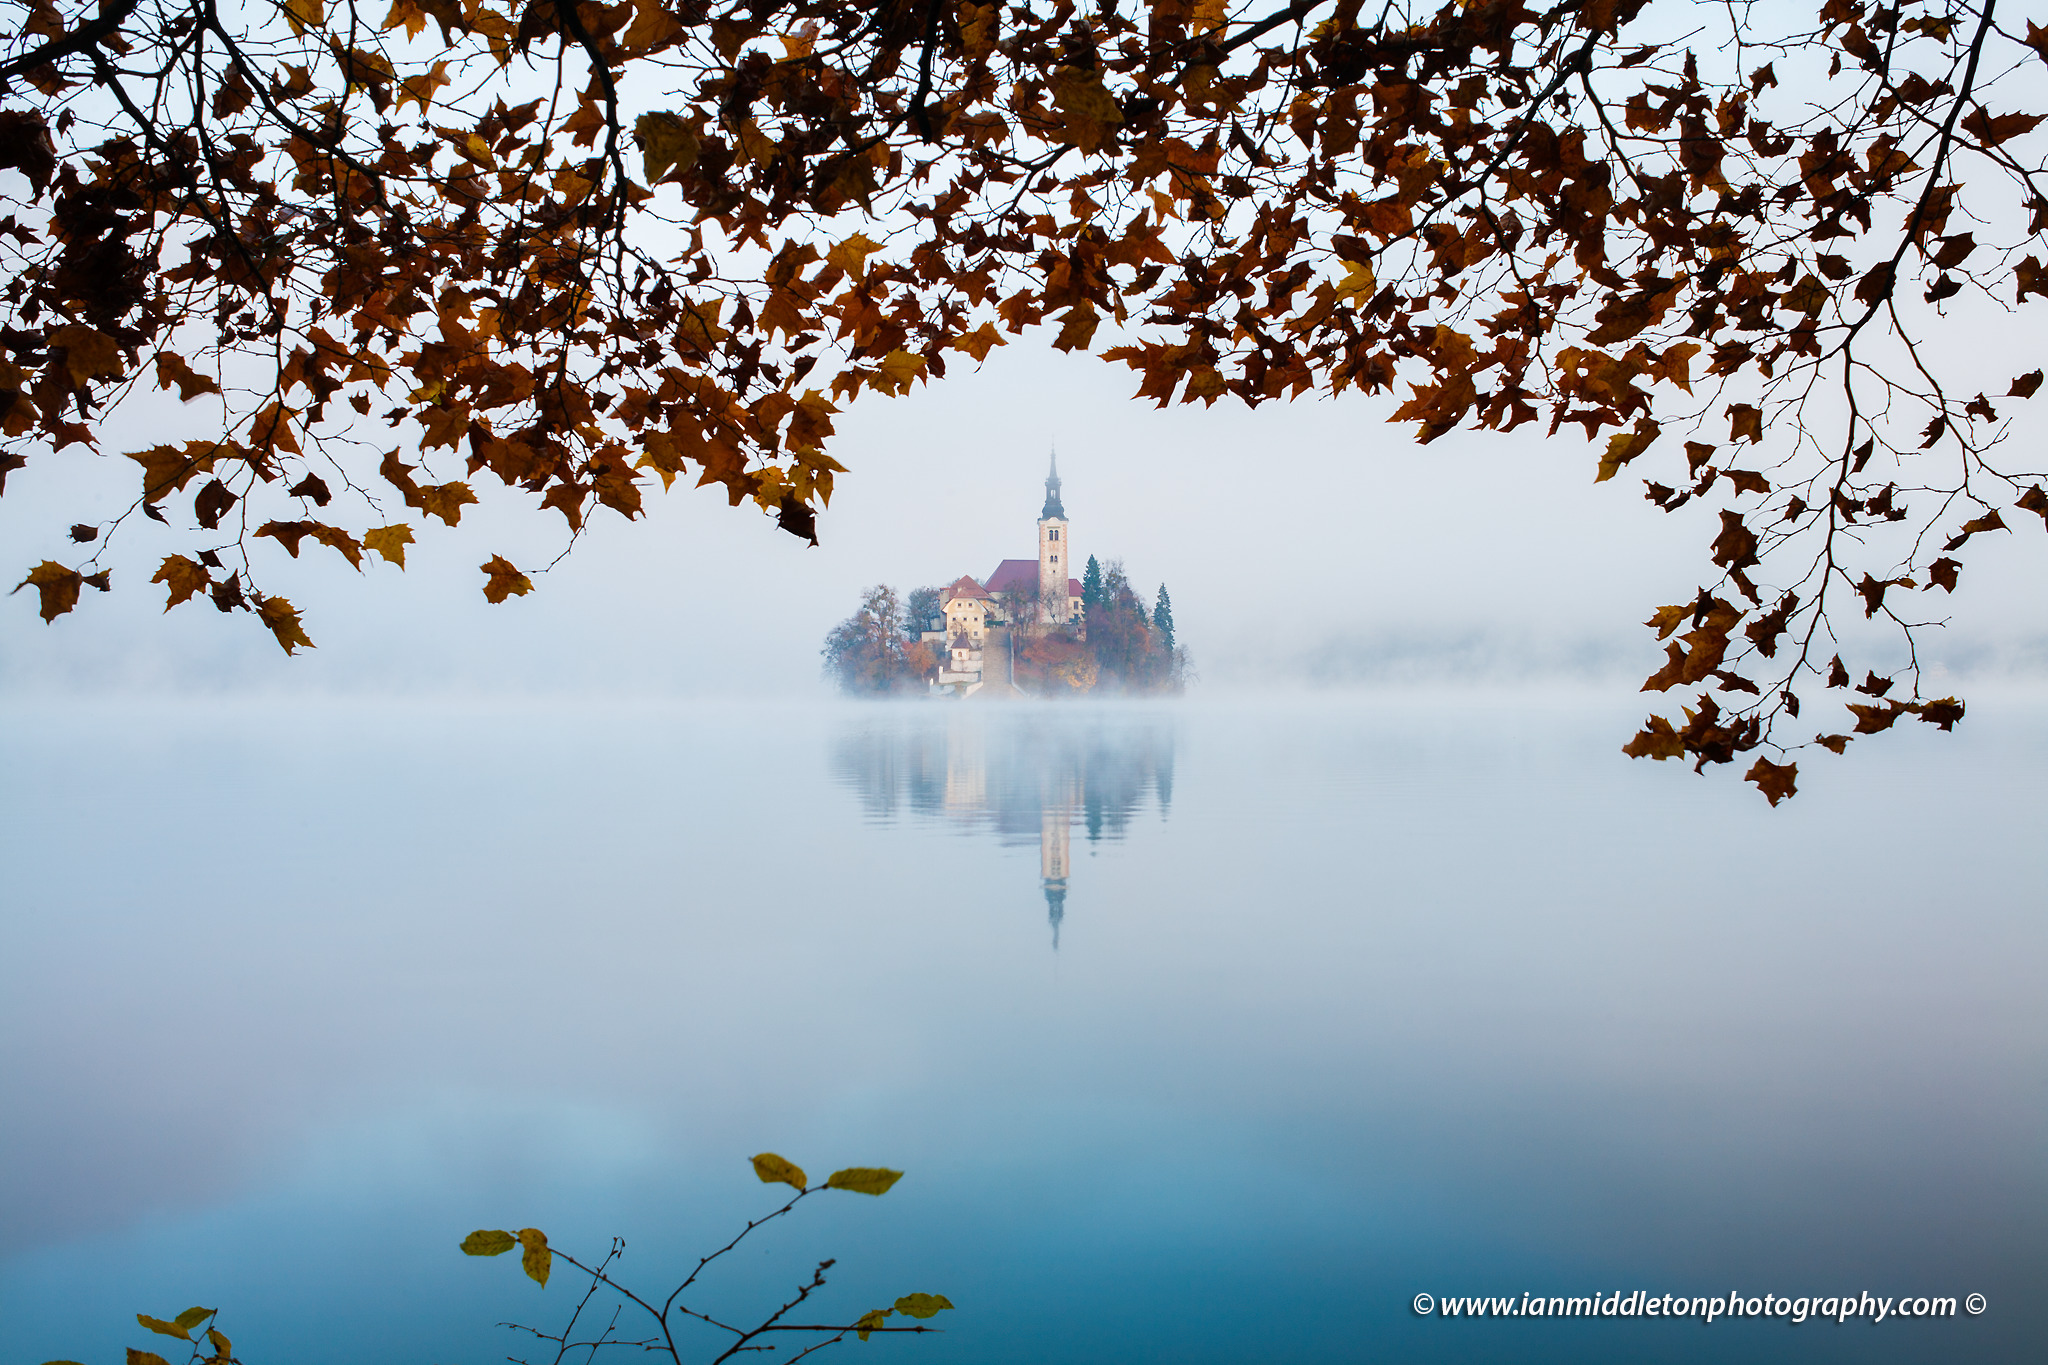 Lake Bled on a misty autumn morning